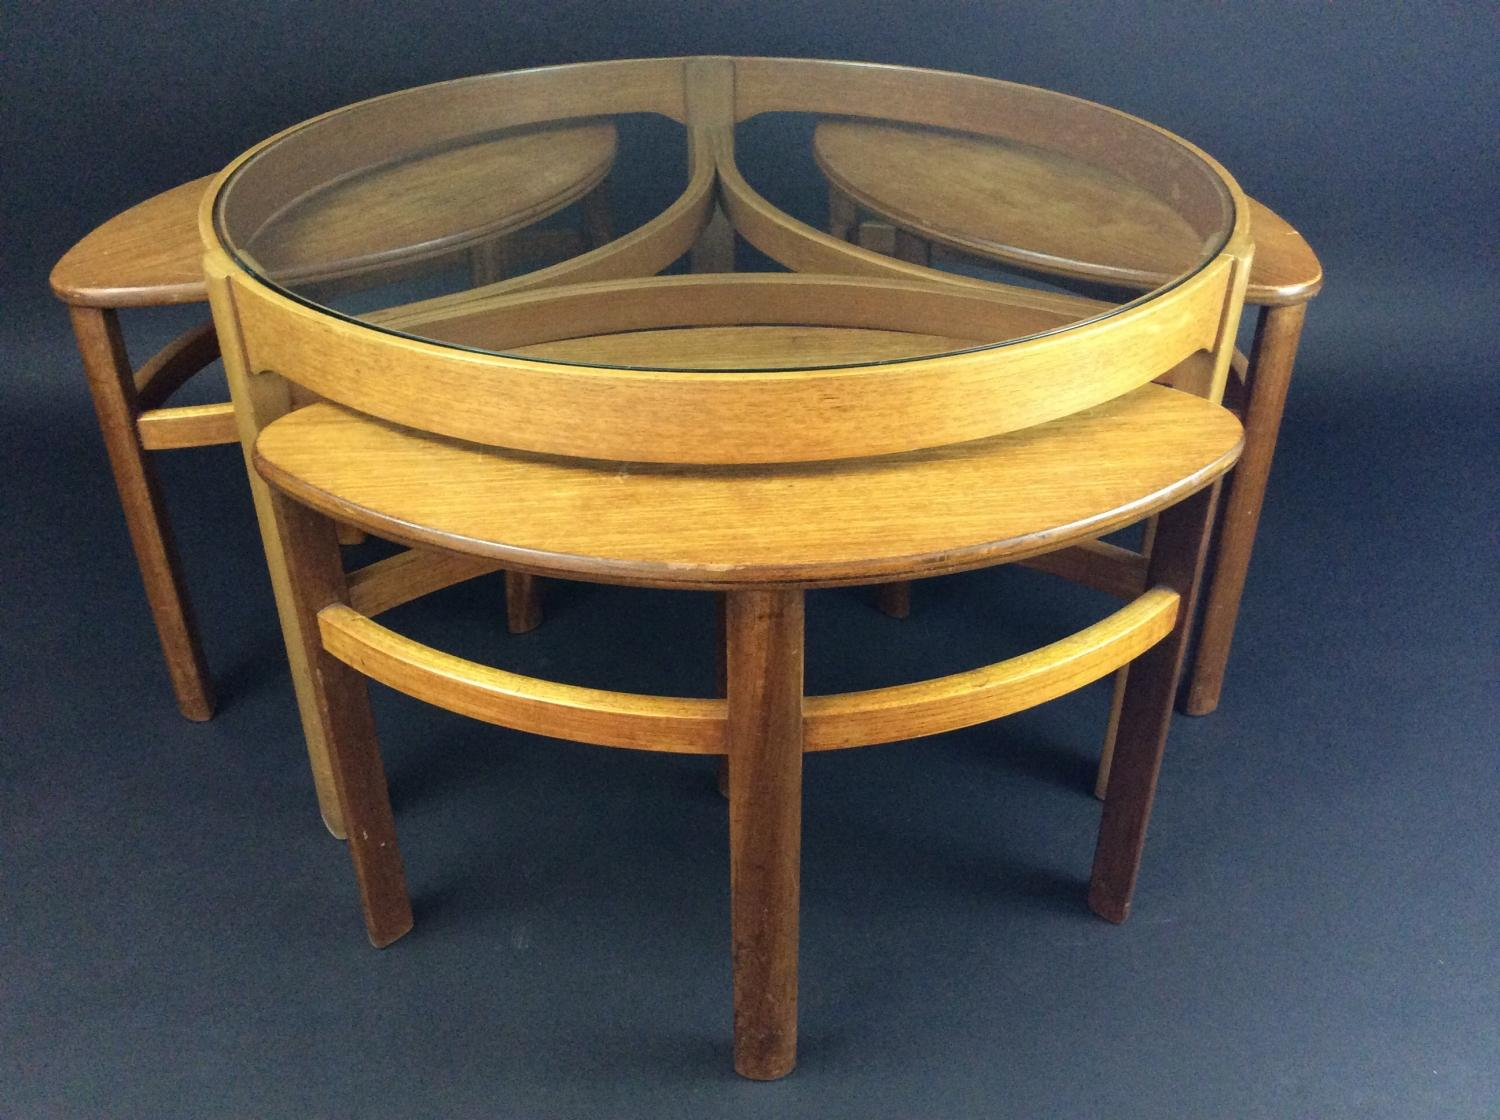 Retro light teak circular glass top coffee table nest of tables by -  Nathan Retro Teak Coffee Table And Nest Picture 4